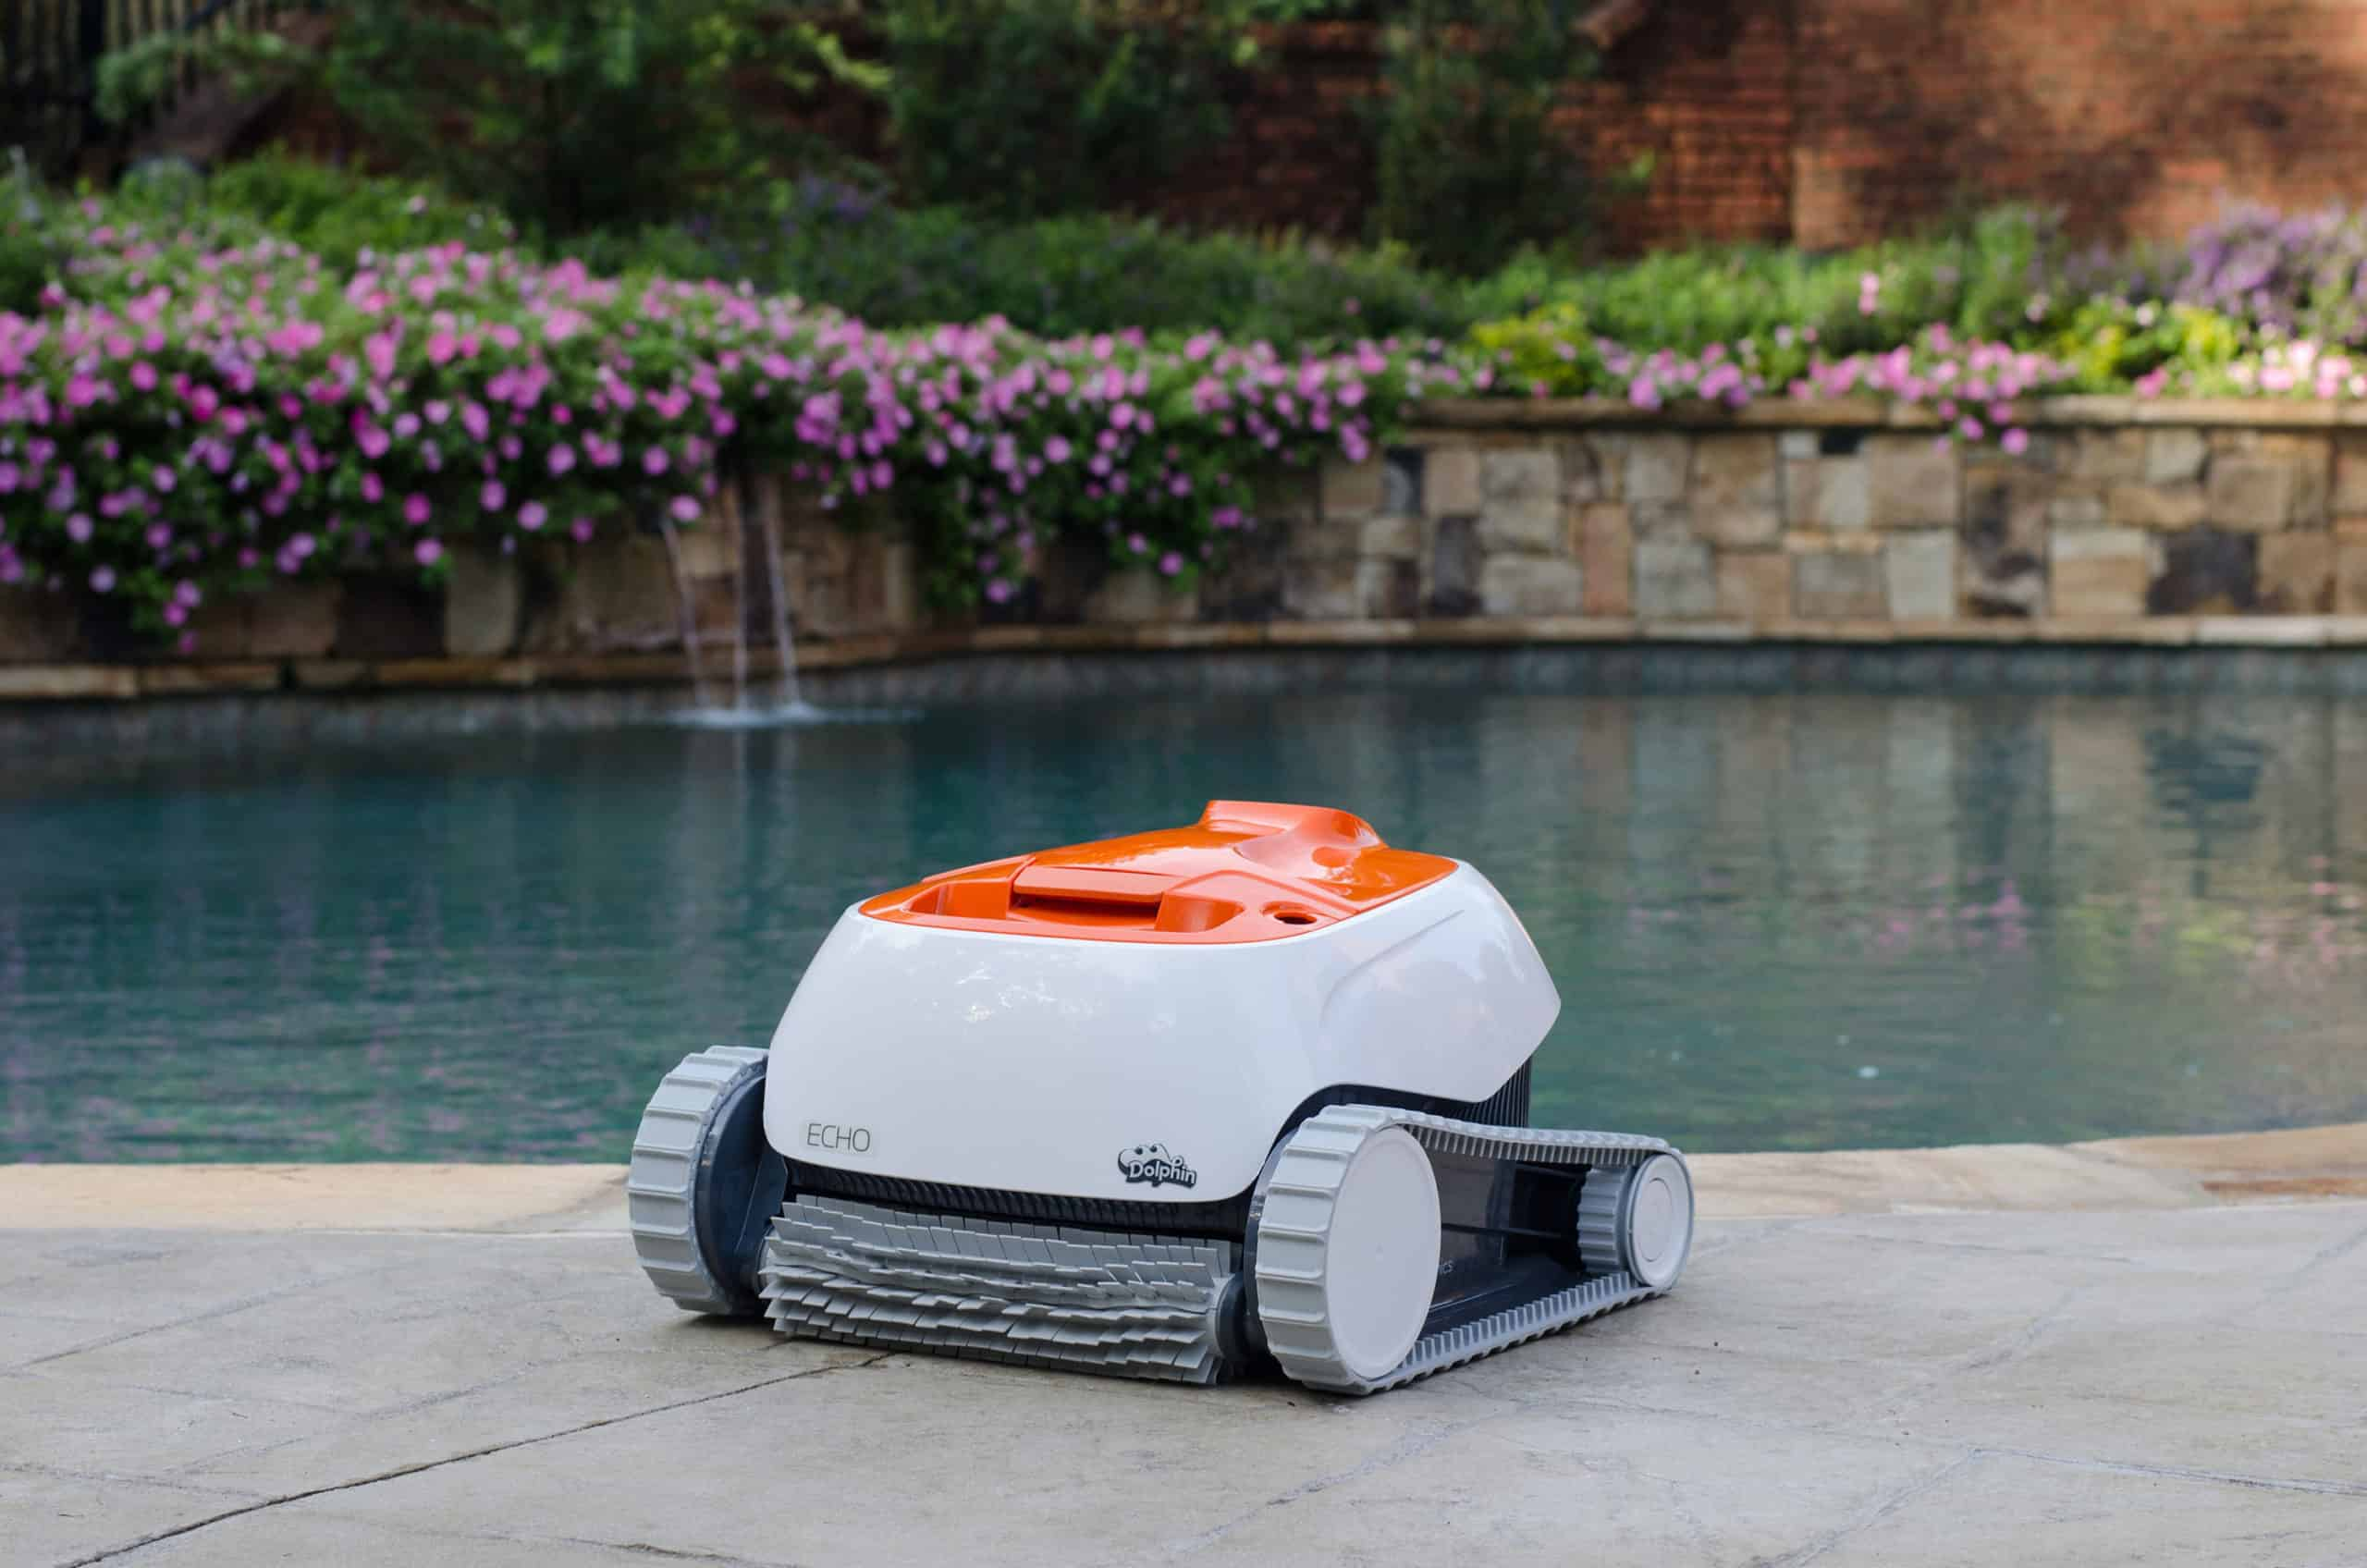 Echo in ground swimming pool cleaner